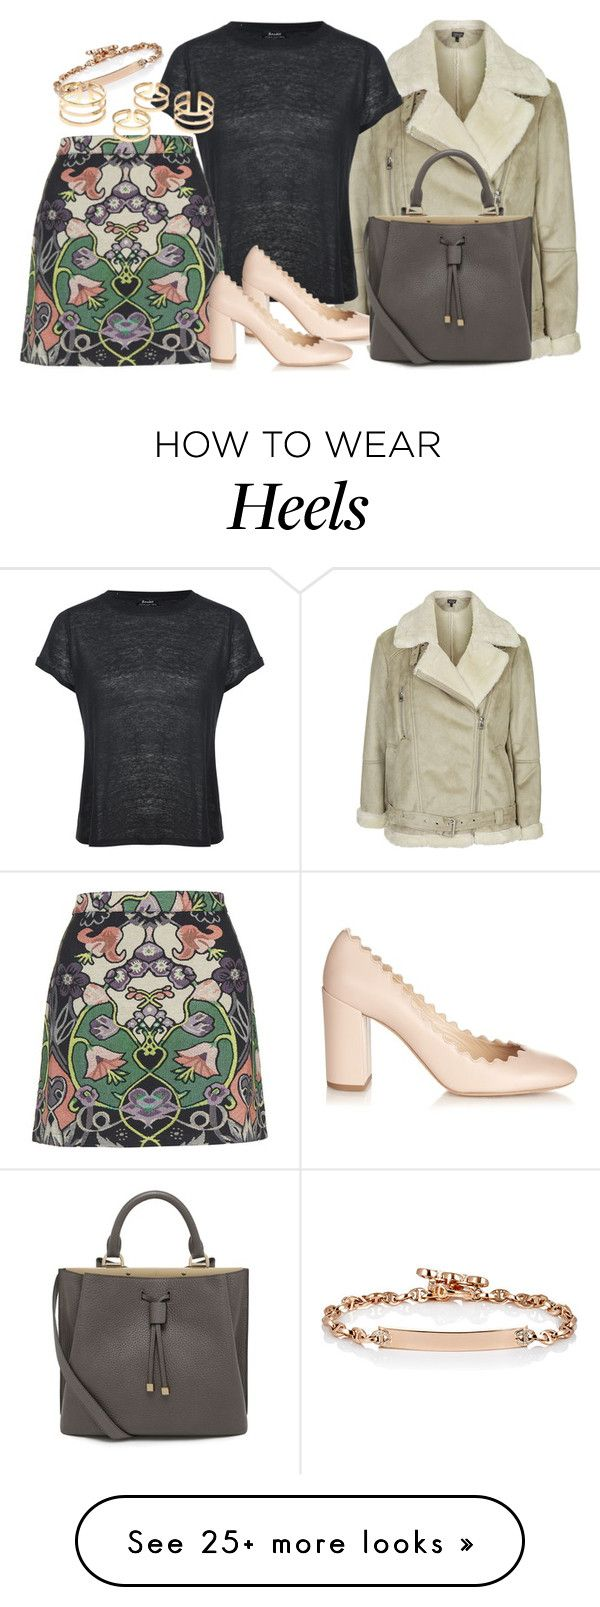 """""""Untitled #2274"""" by erinforde on Polyvore featuring Topshop, Hoorsenbuhs, Brixton, Chloé, Mulberry, women's clothing, women's fashion, women, female and woman"""